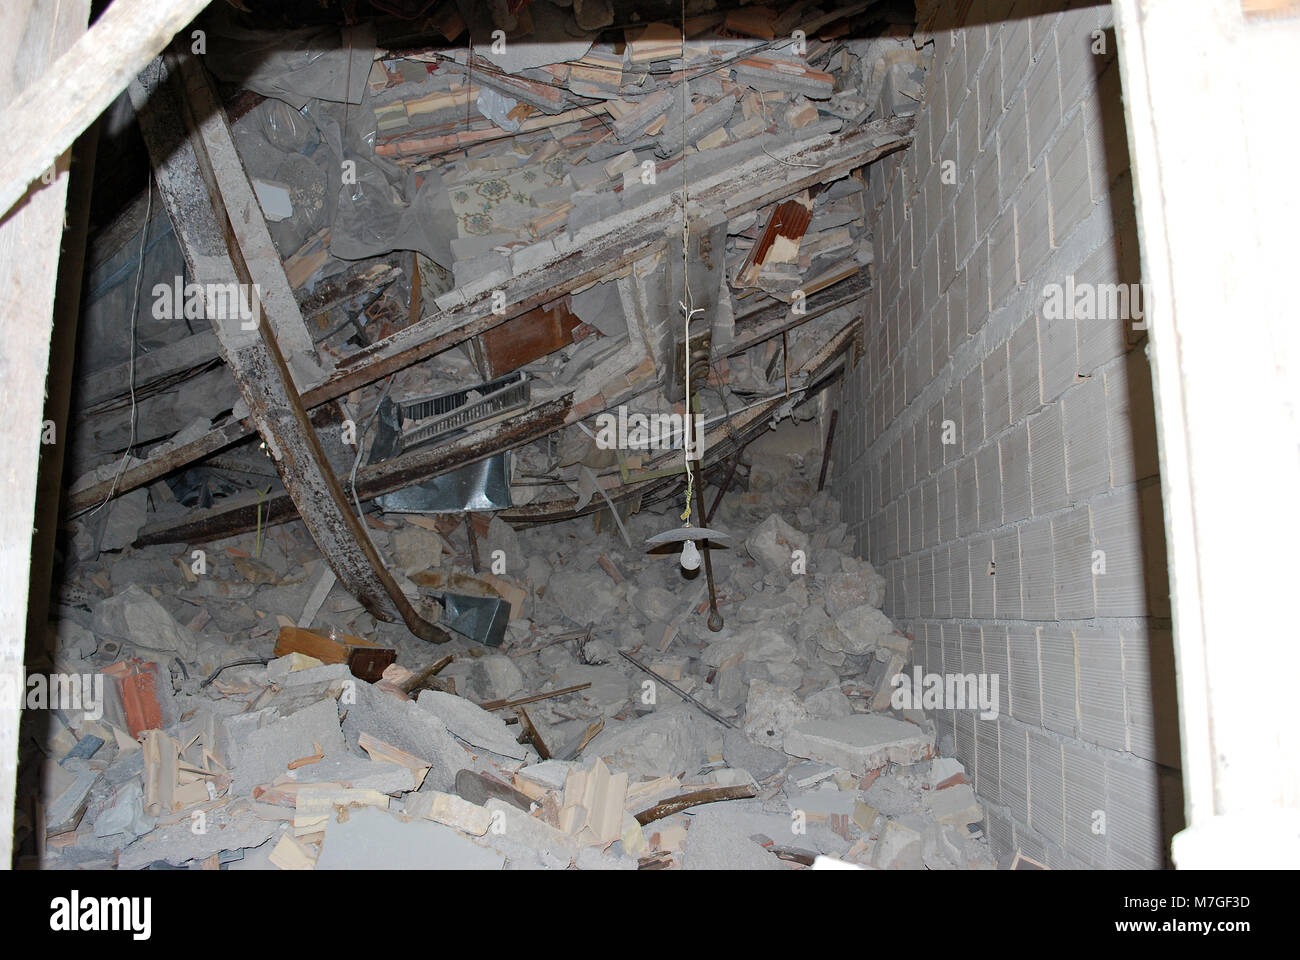 Interior of a damaged house by the earthquake, L'Aquila - Italy 2009. © Antonio Ciufo - Stock Image